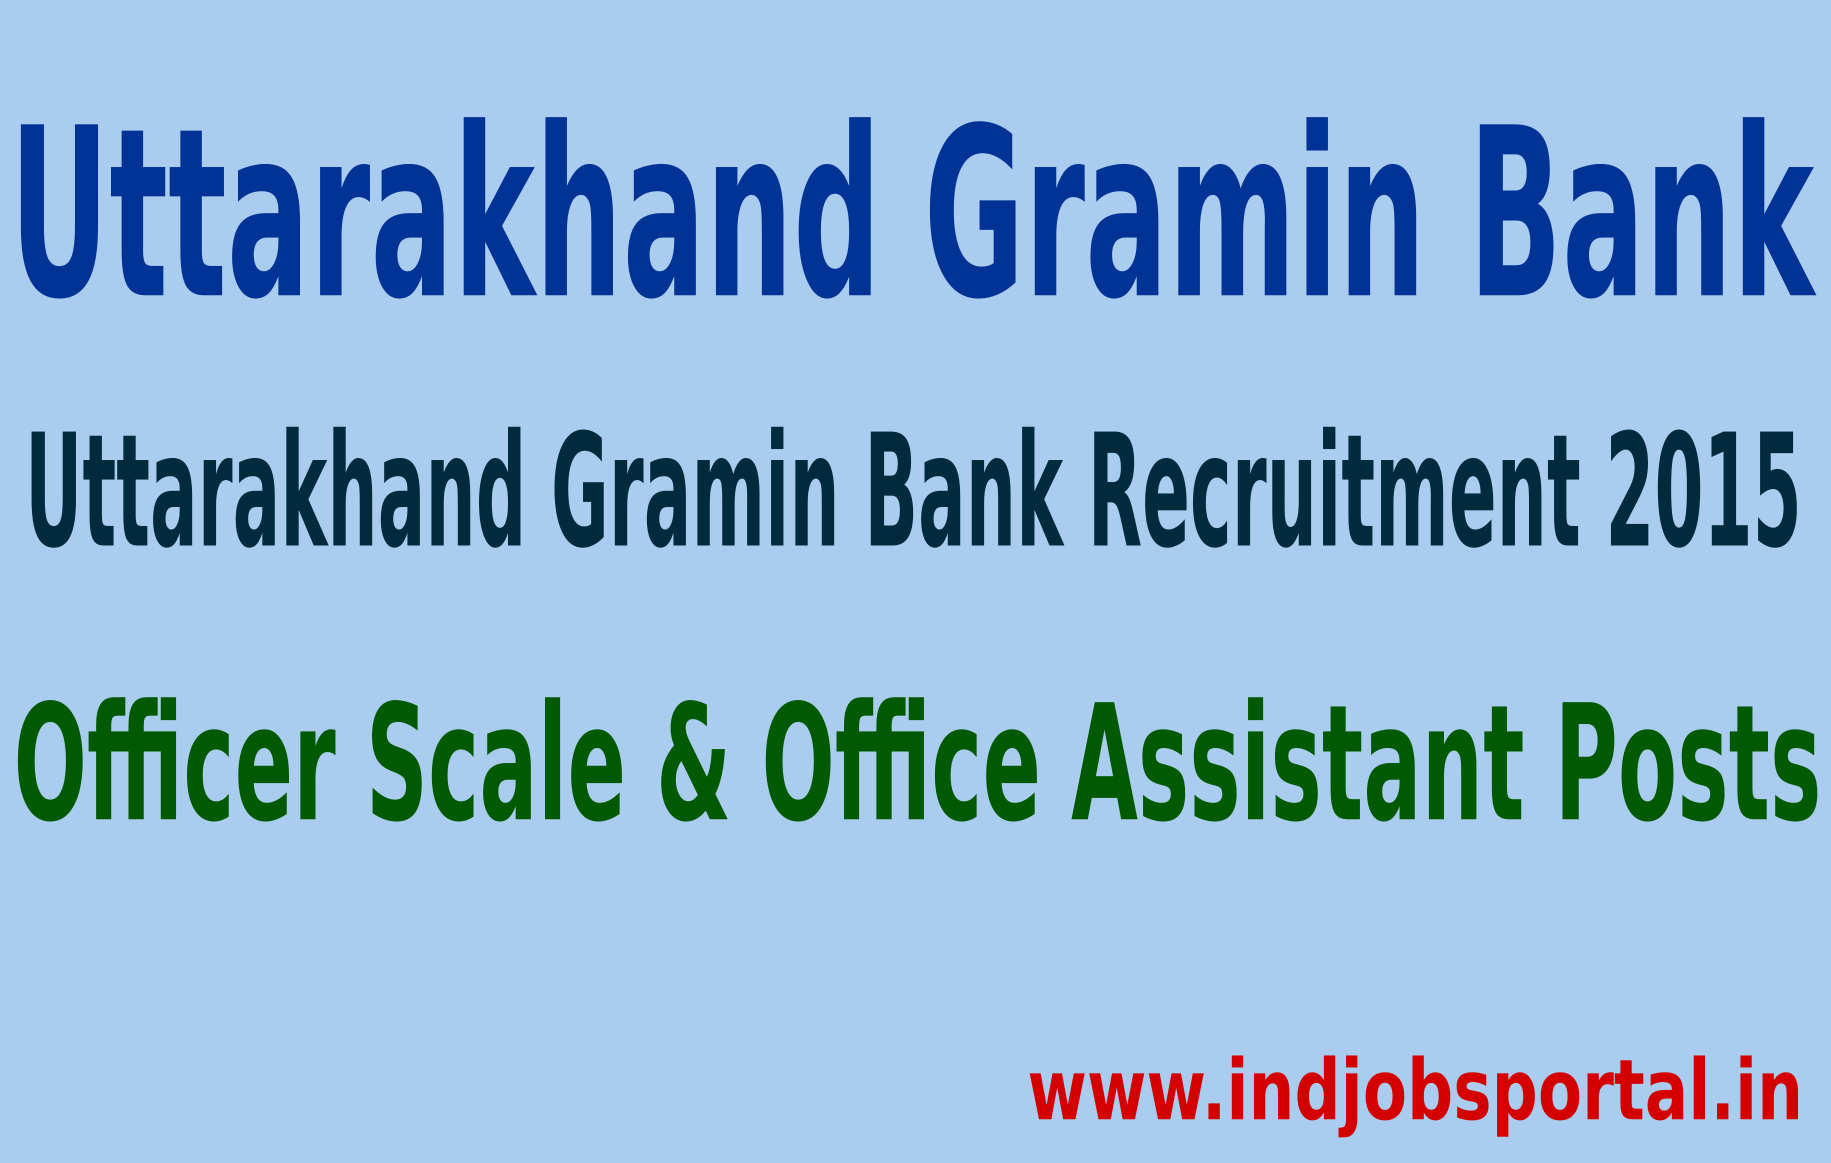 Uttarakhand Gramin Bank Recruitment 2015 For 291 Officer Scale & Office Assistant Posts